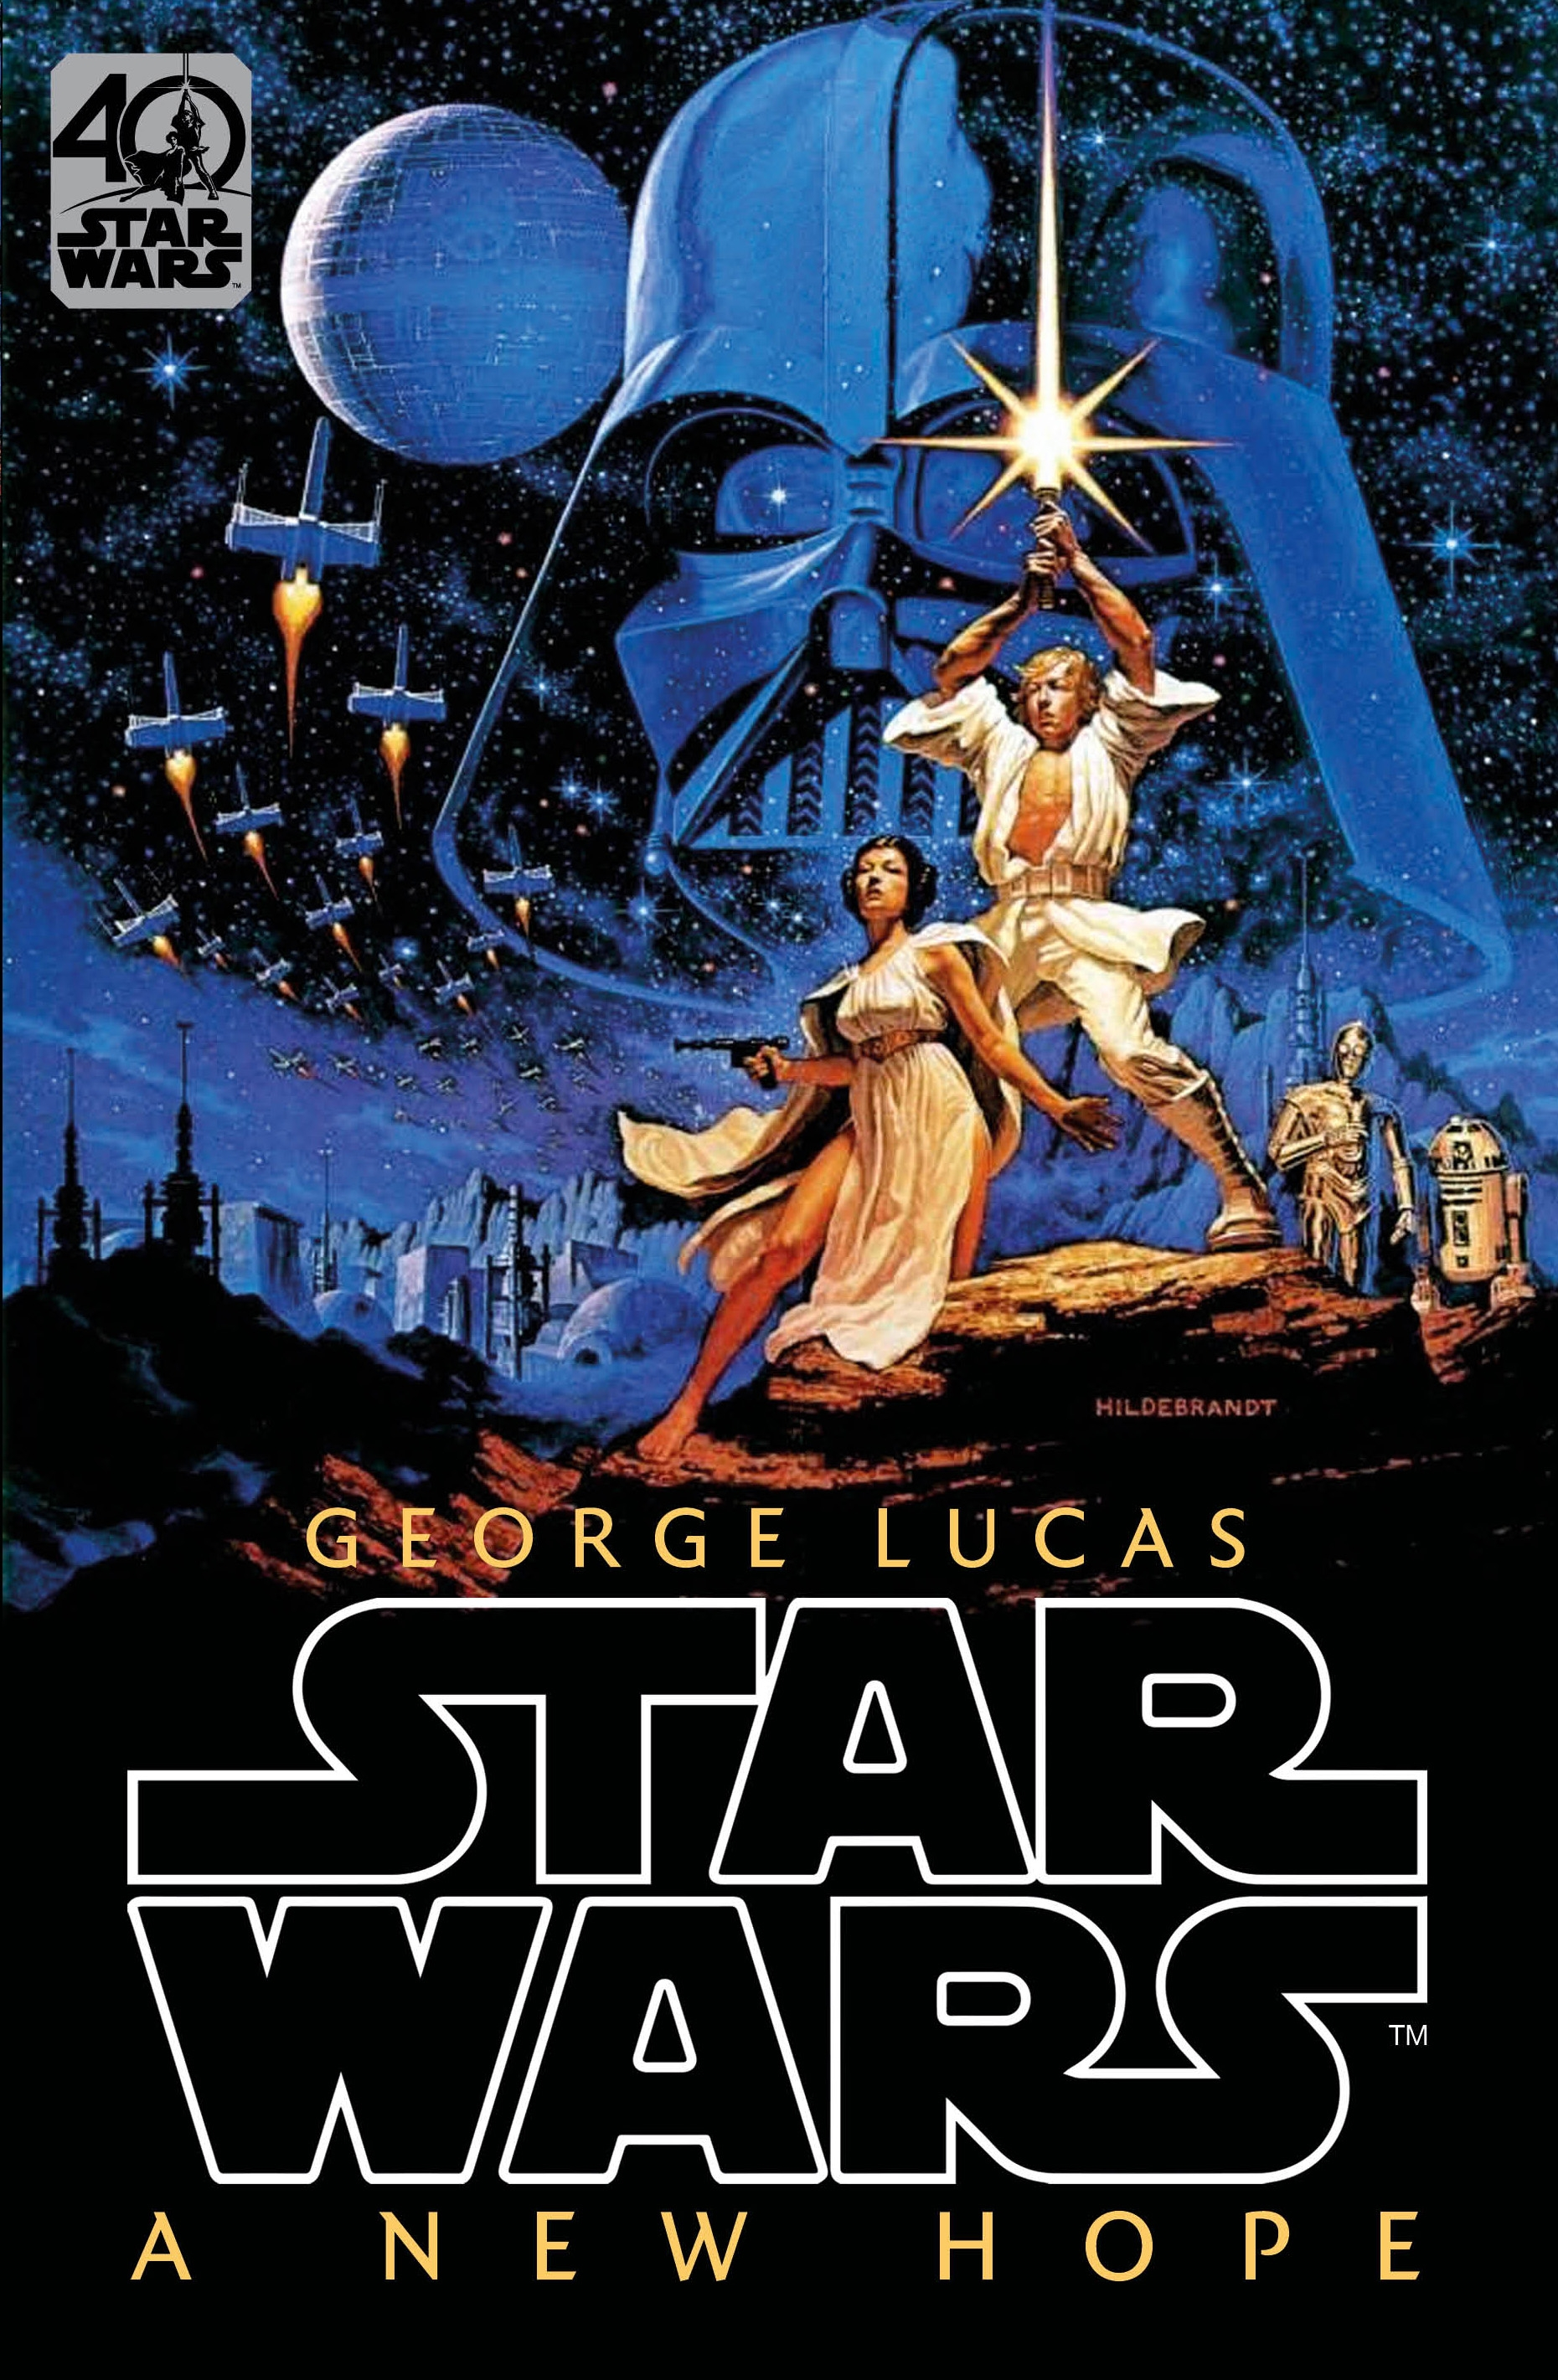 Star Wars Episode Iv A New Hope By George Lucas Penguin Books Australia